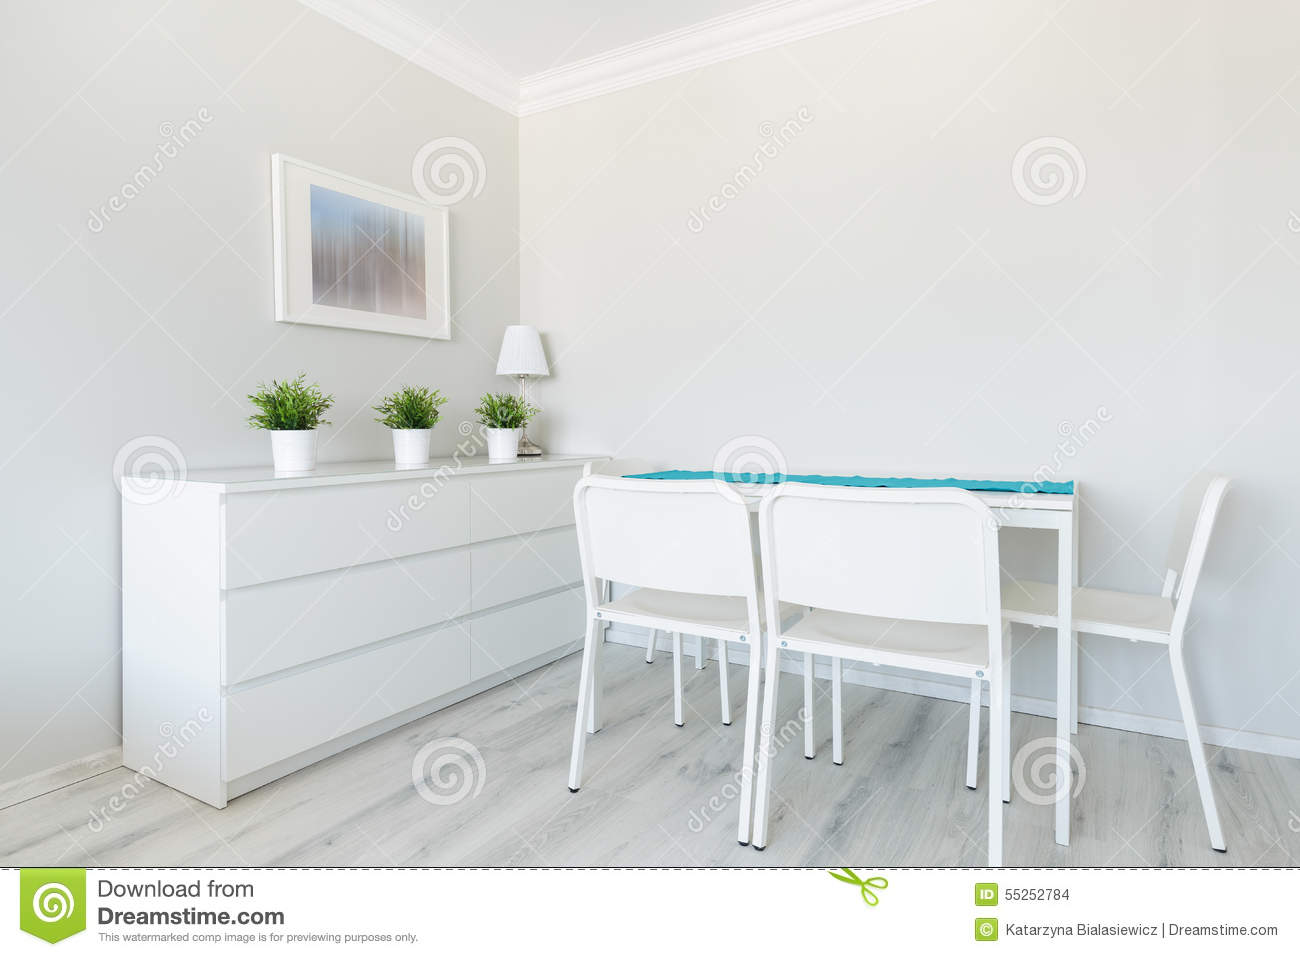 https://thumbs.dreamstime.com/z/witte-eetkamer-55252784.jpg